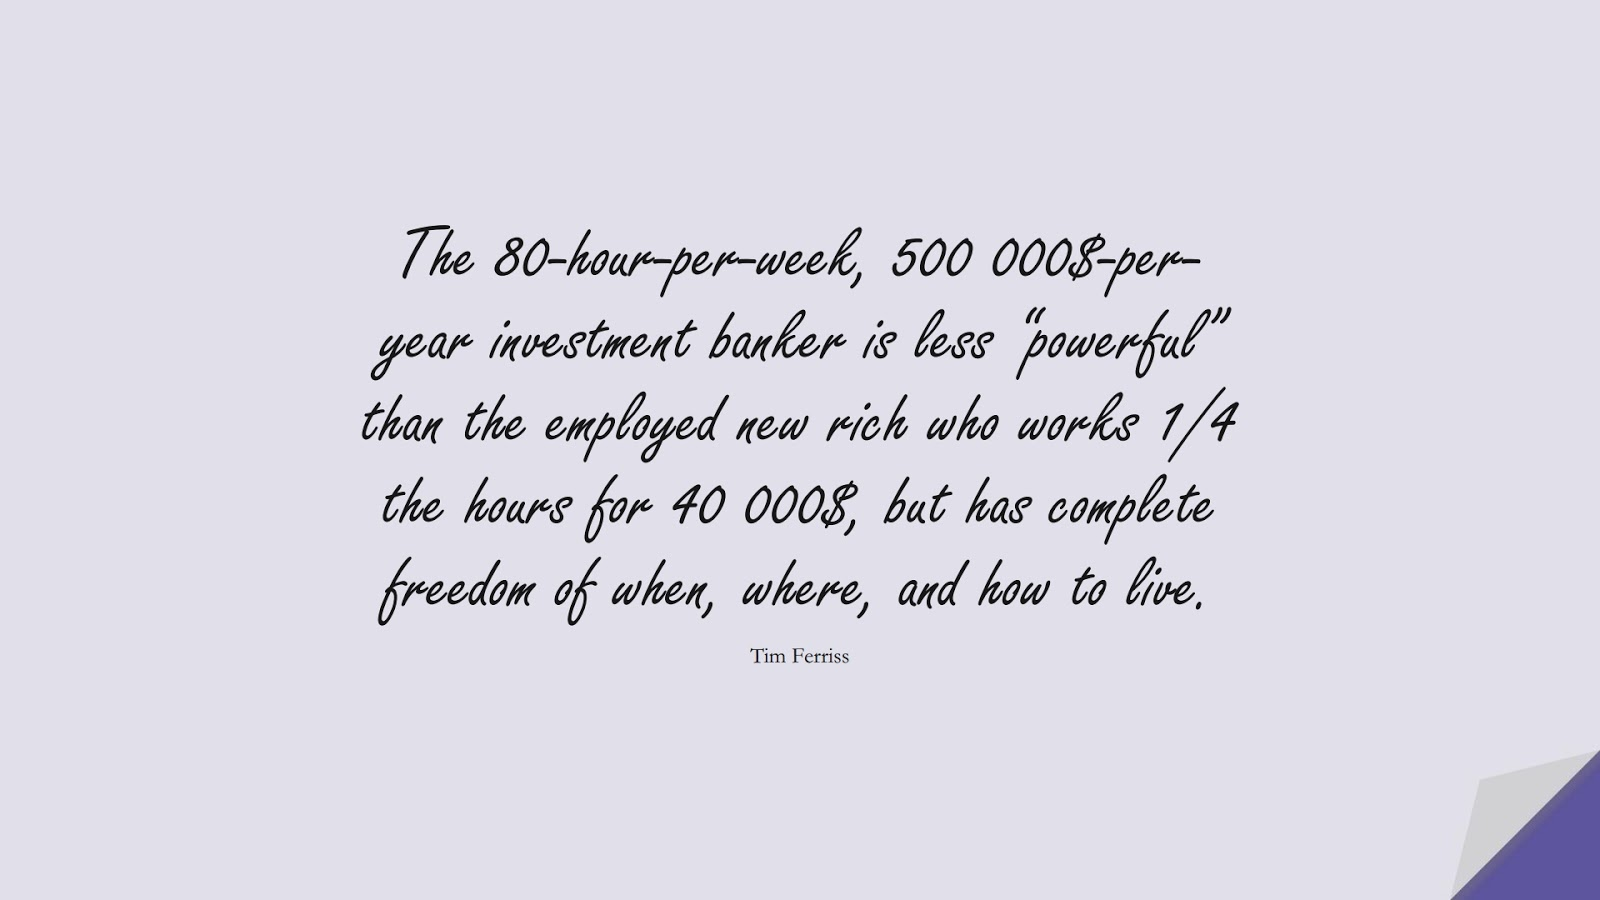 """The 80-hour-per-week, 500 000$-per-year investment banker is less """"powerful"""" than the employed new rich who works 1/4 the hours for 40 000$, but has complete freedom of when, where, and how to live. (Tim Ferriss);  #TimFerrissQuotes"""